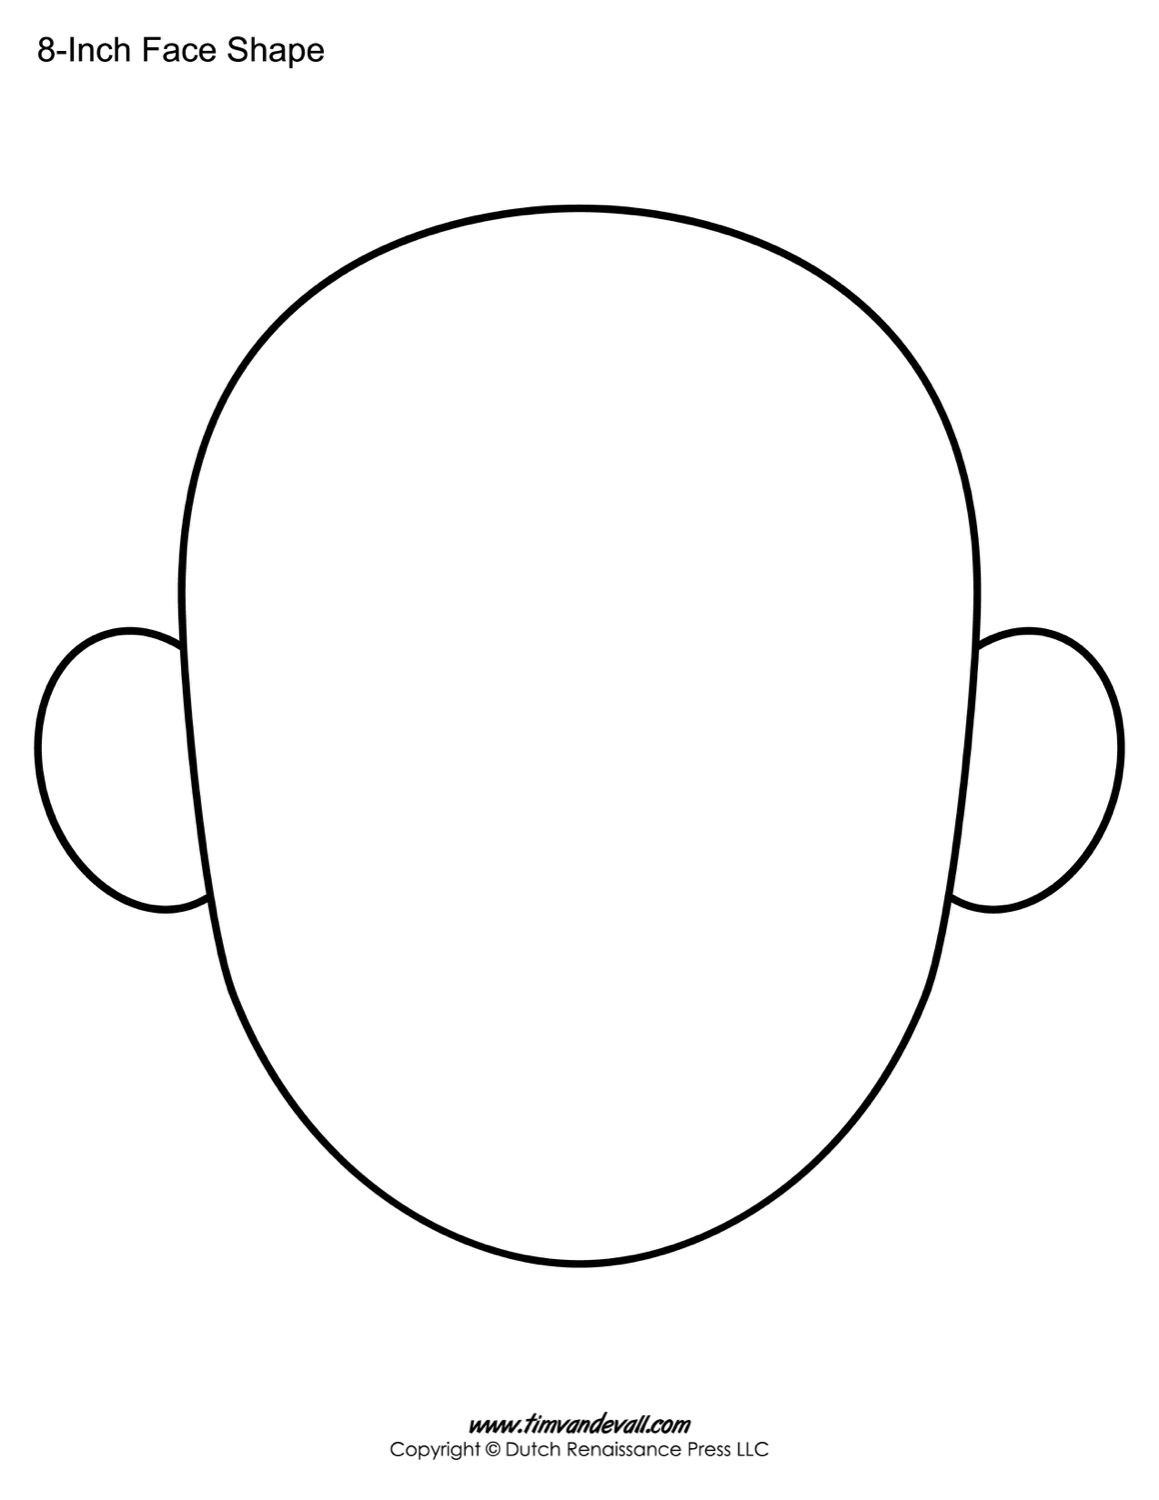 1159x1500 Blank Face Templates Printable Face Shapes For Kids